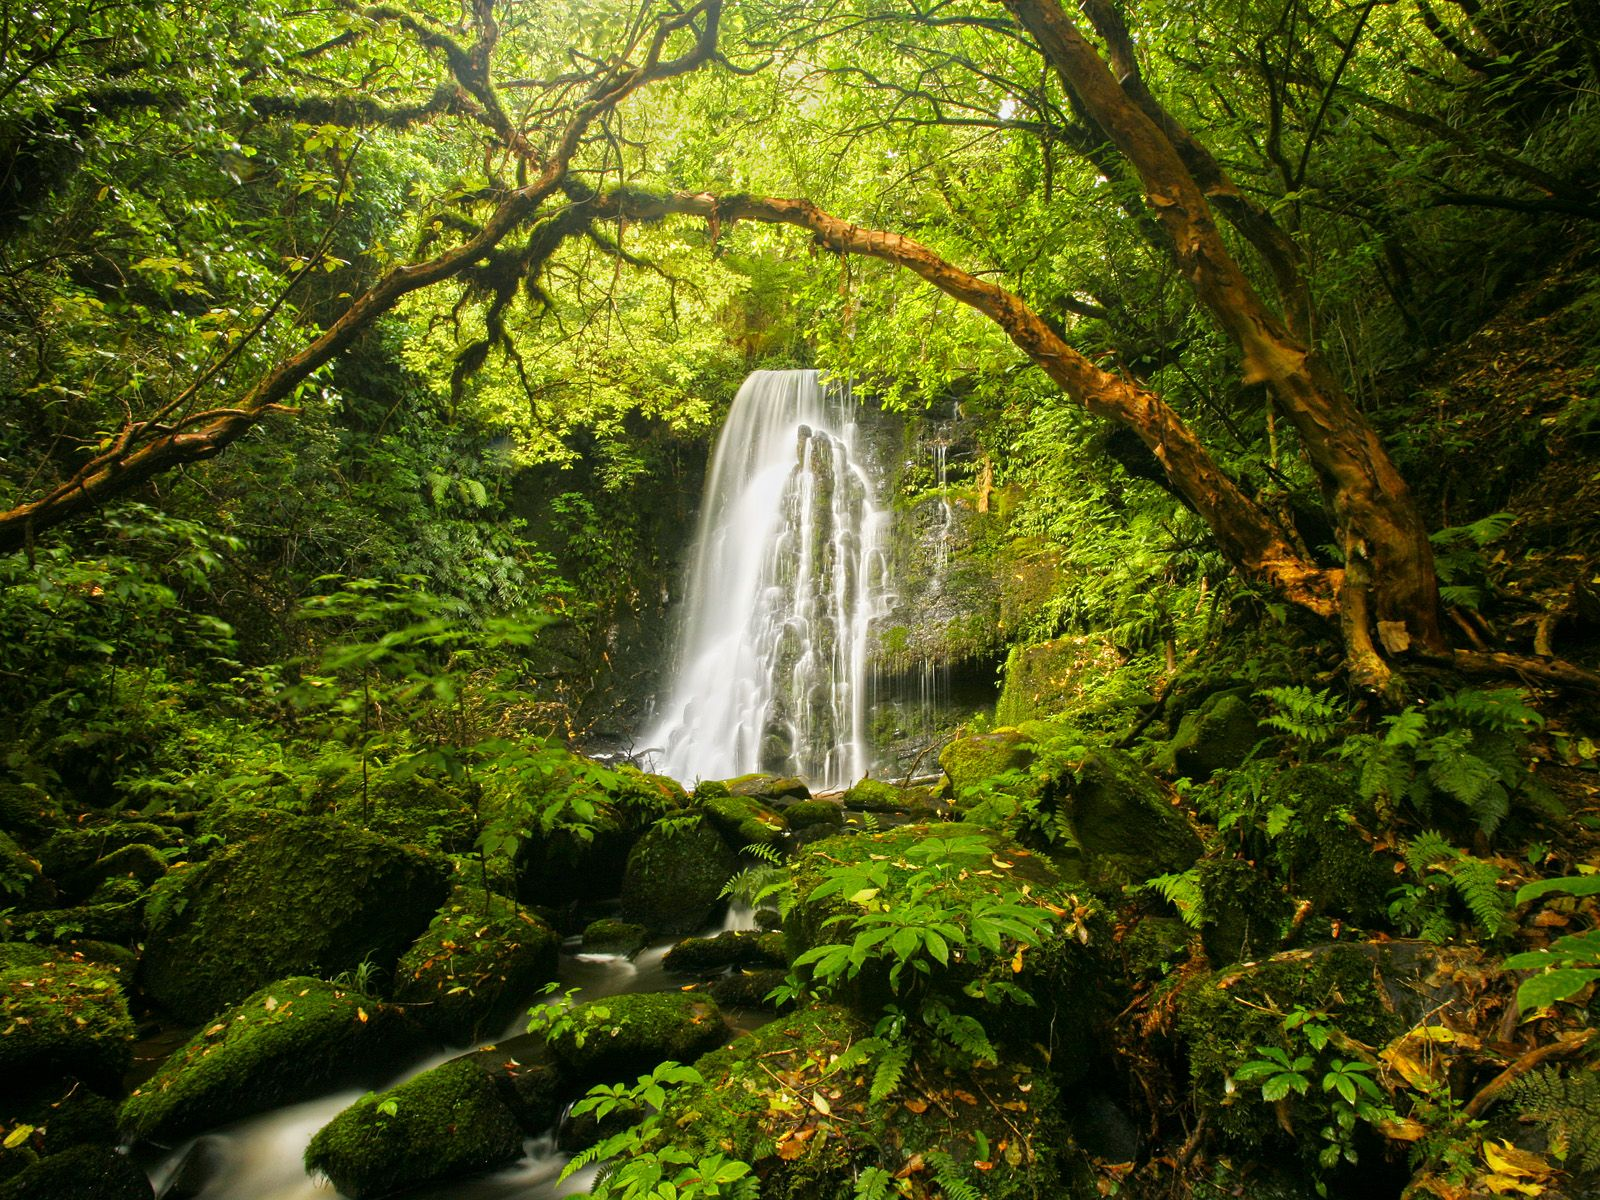 New Zealand Small Waterfall In The Forest With Images